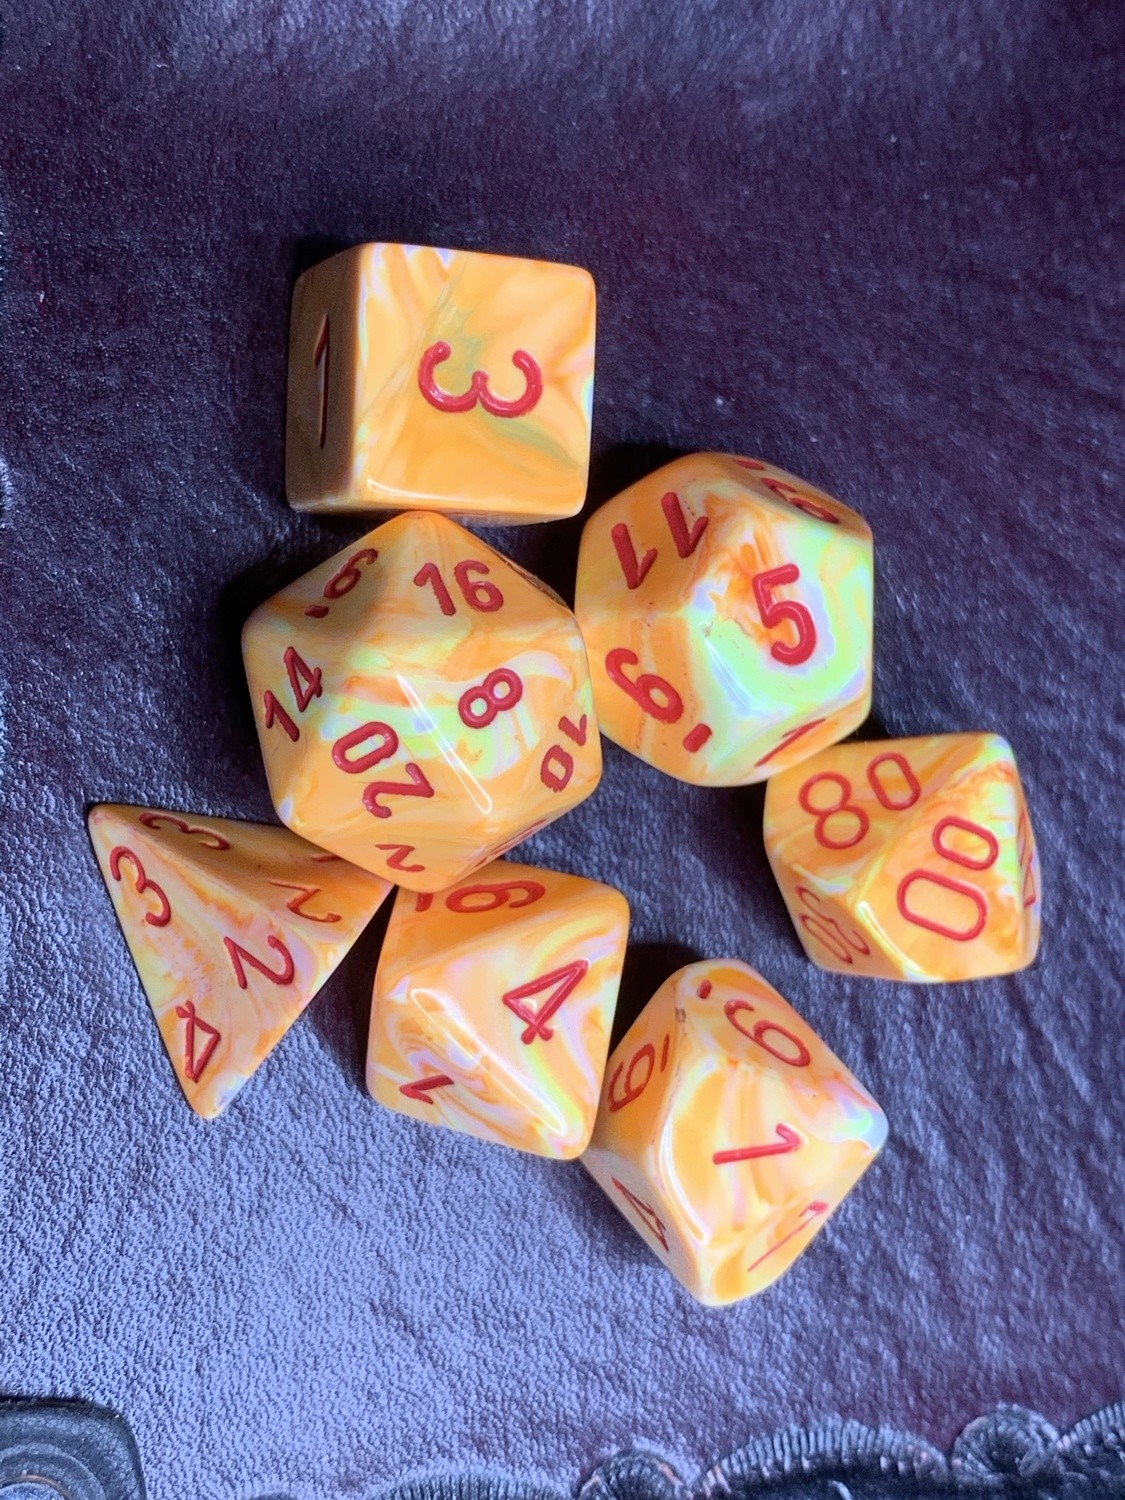 7 Die Polyhedral Dice Set -  Festive Sunburst with Red